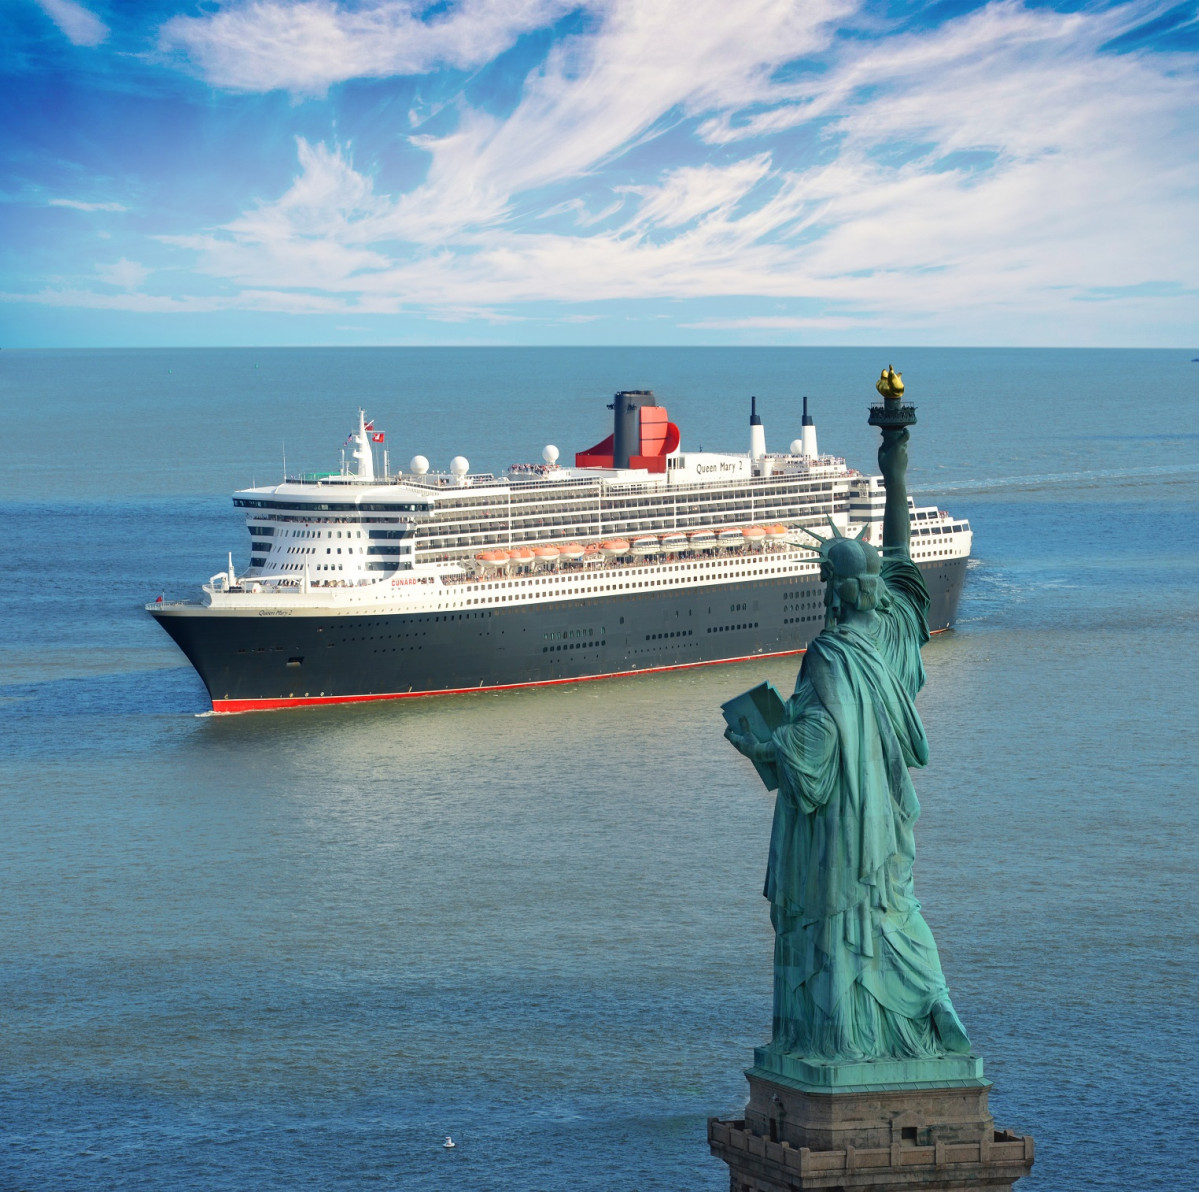 Queen Mary 2 en Nueva York 1524